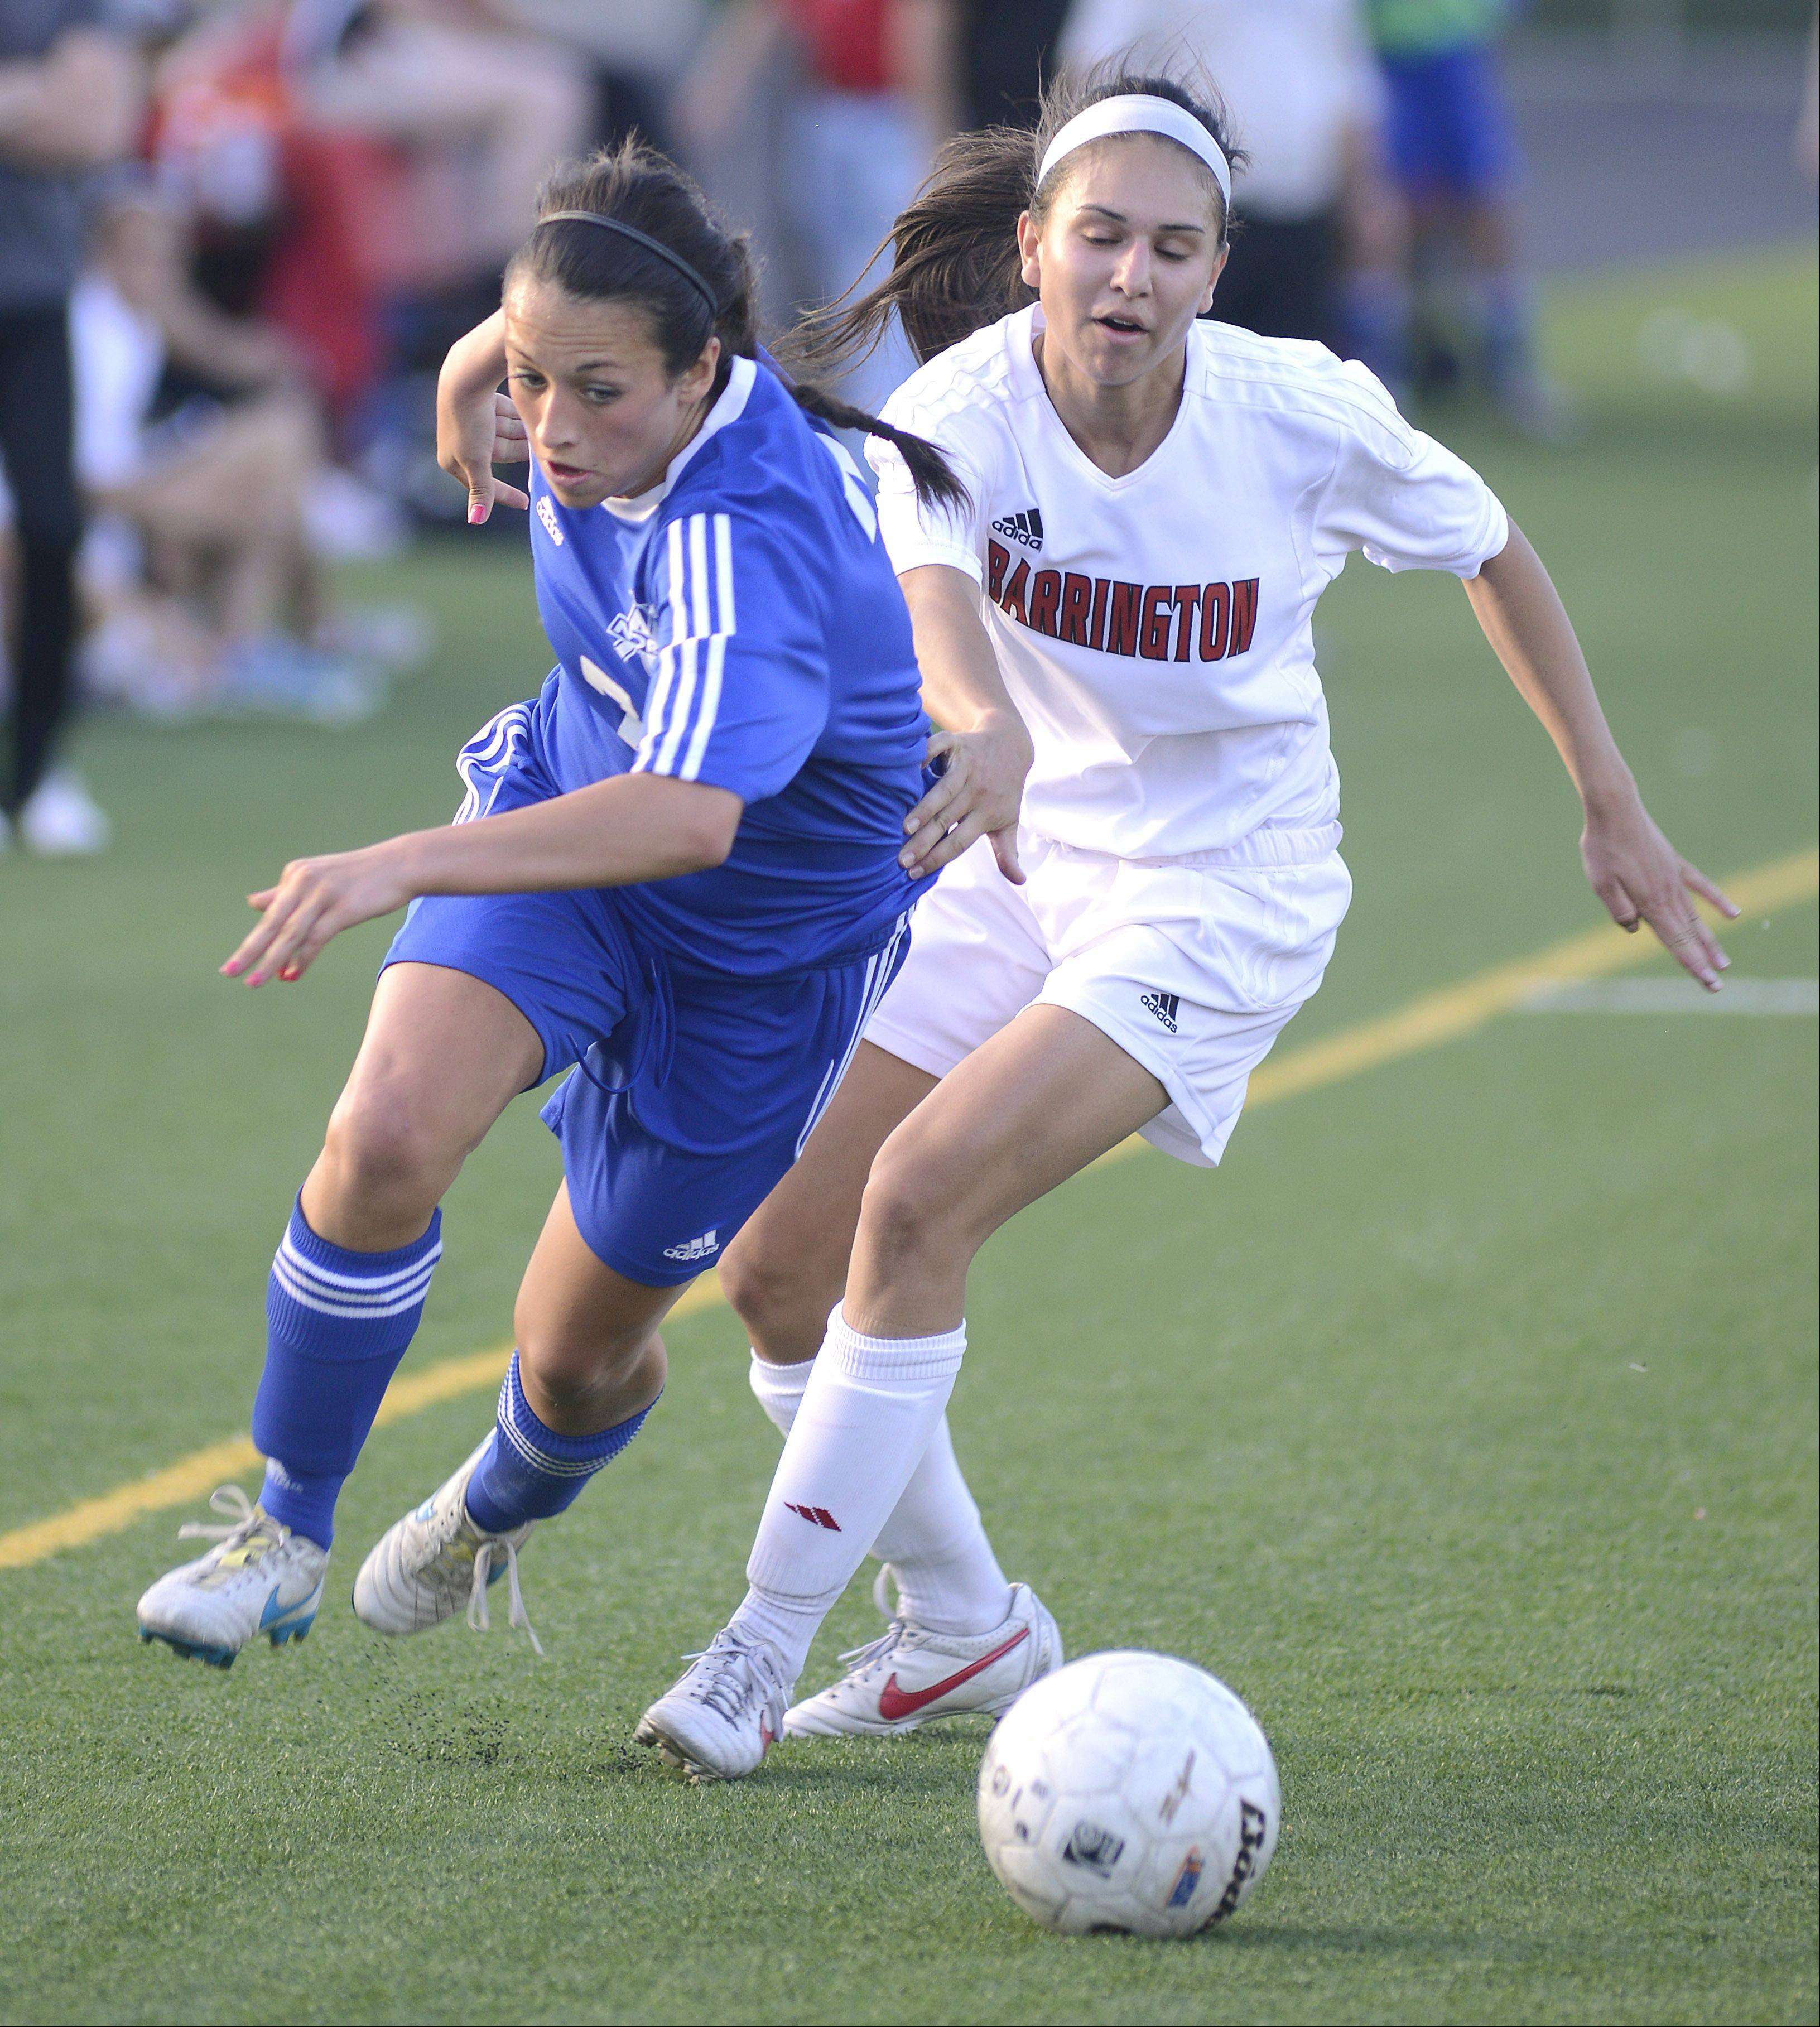 St. Charles North's Ashlyn Walter and Barrington's Aimee Pierce battle for the ball in the second half of the Class 3A supersectional in Barrington on Wednesday.